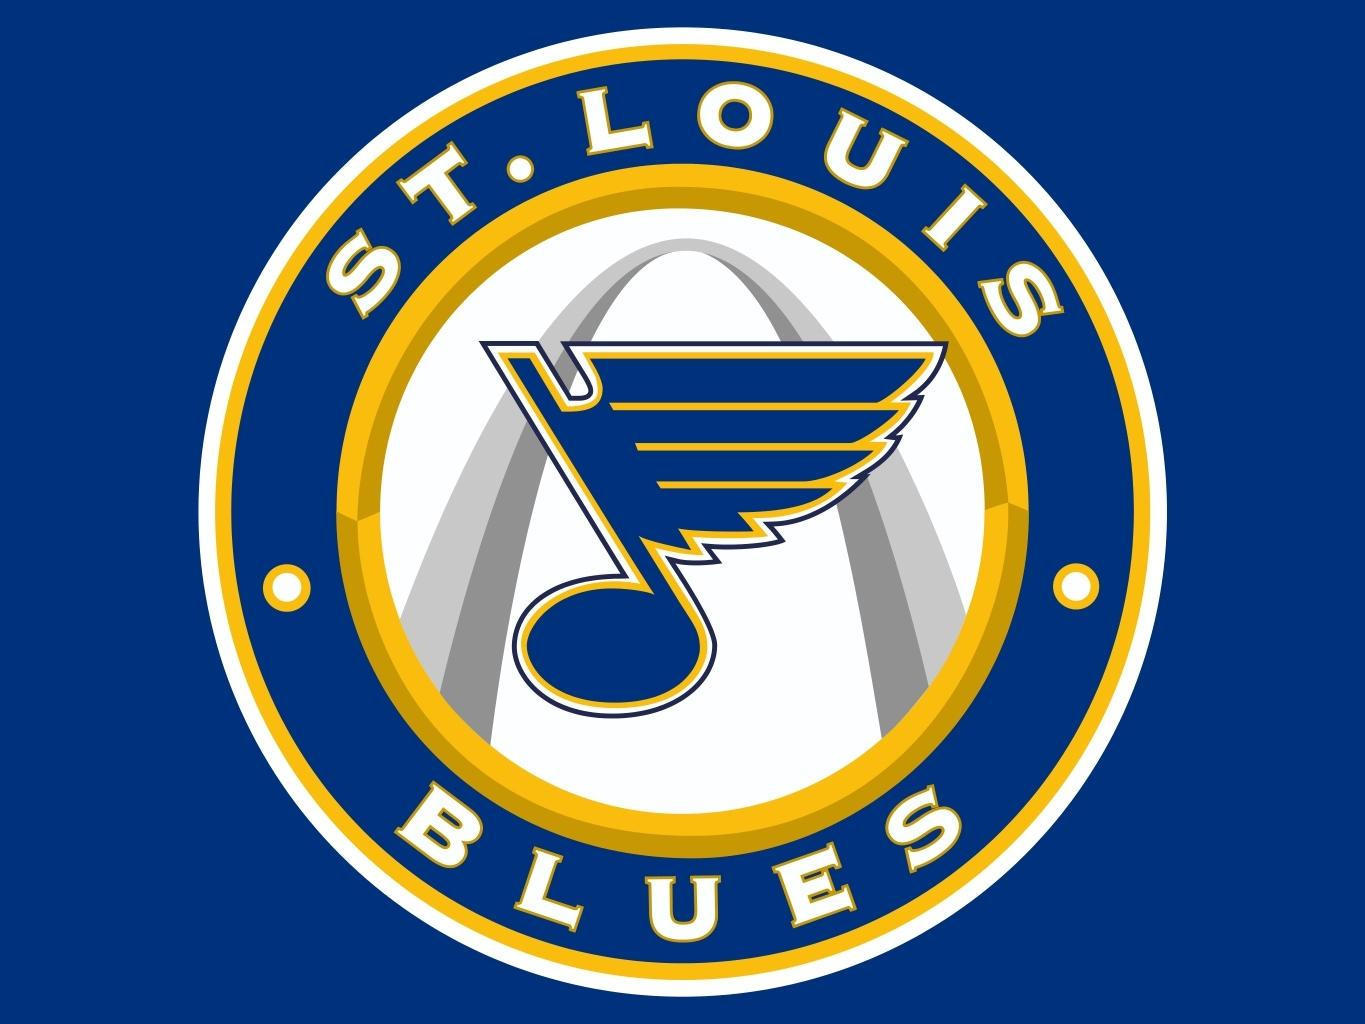 St. louis Blues Wallpapers and Backgrounds Image